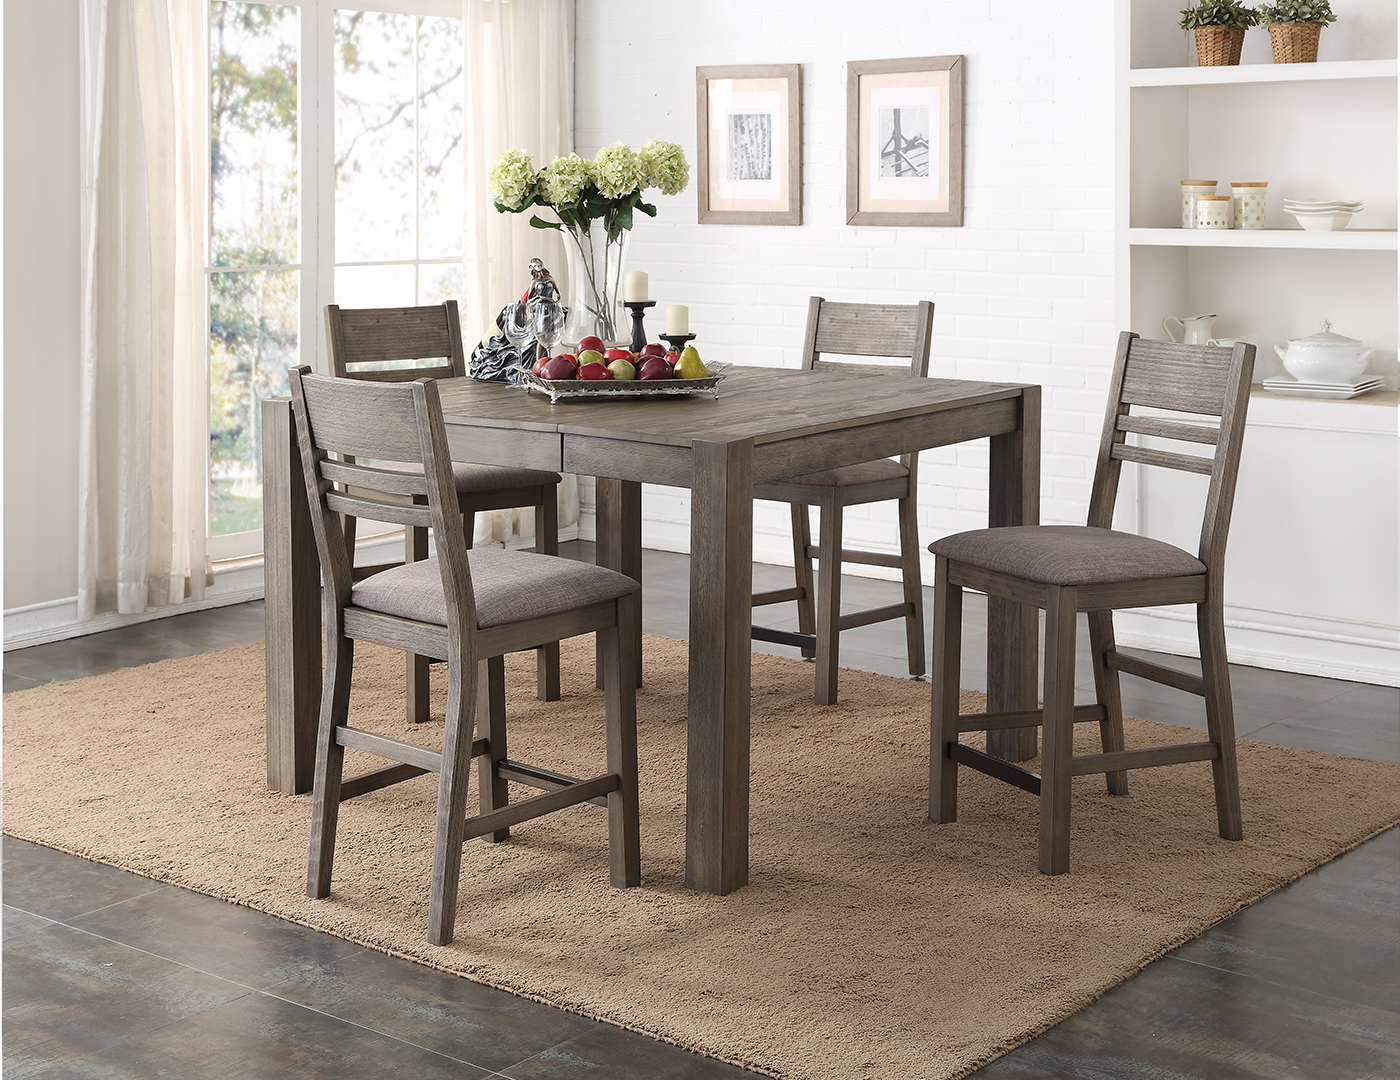 Steinhafels trisha yearwood 5 pc dining set for Counter height dining set